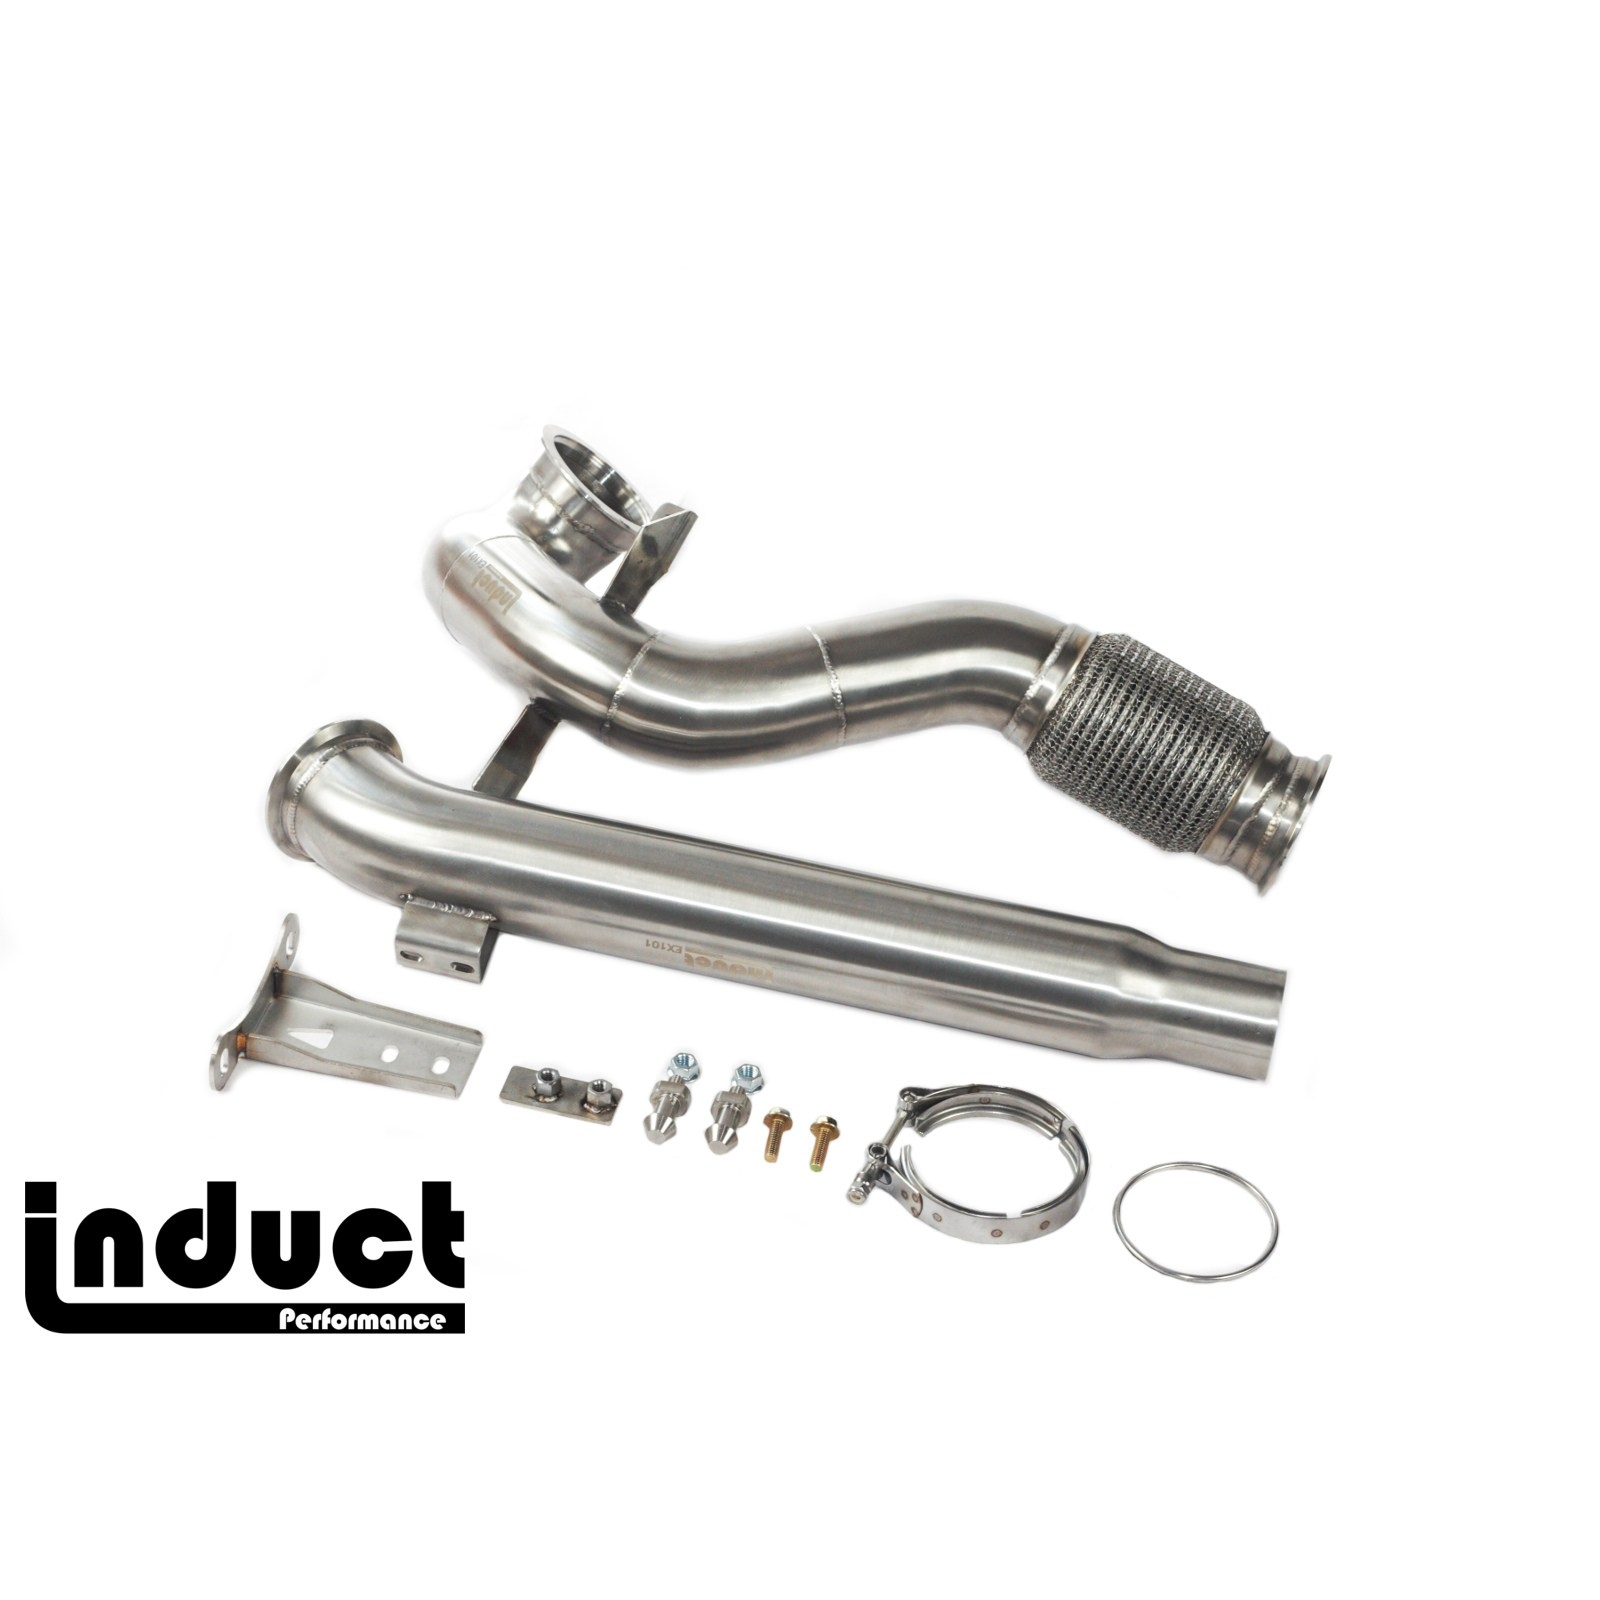 Induct Mk7 Mqb Fwd Downpipe Exhaust For Mk7 Gti Golf And